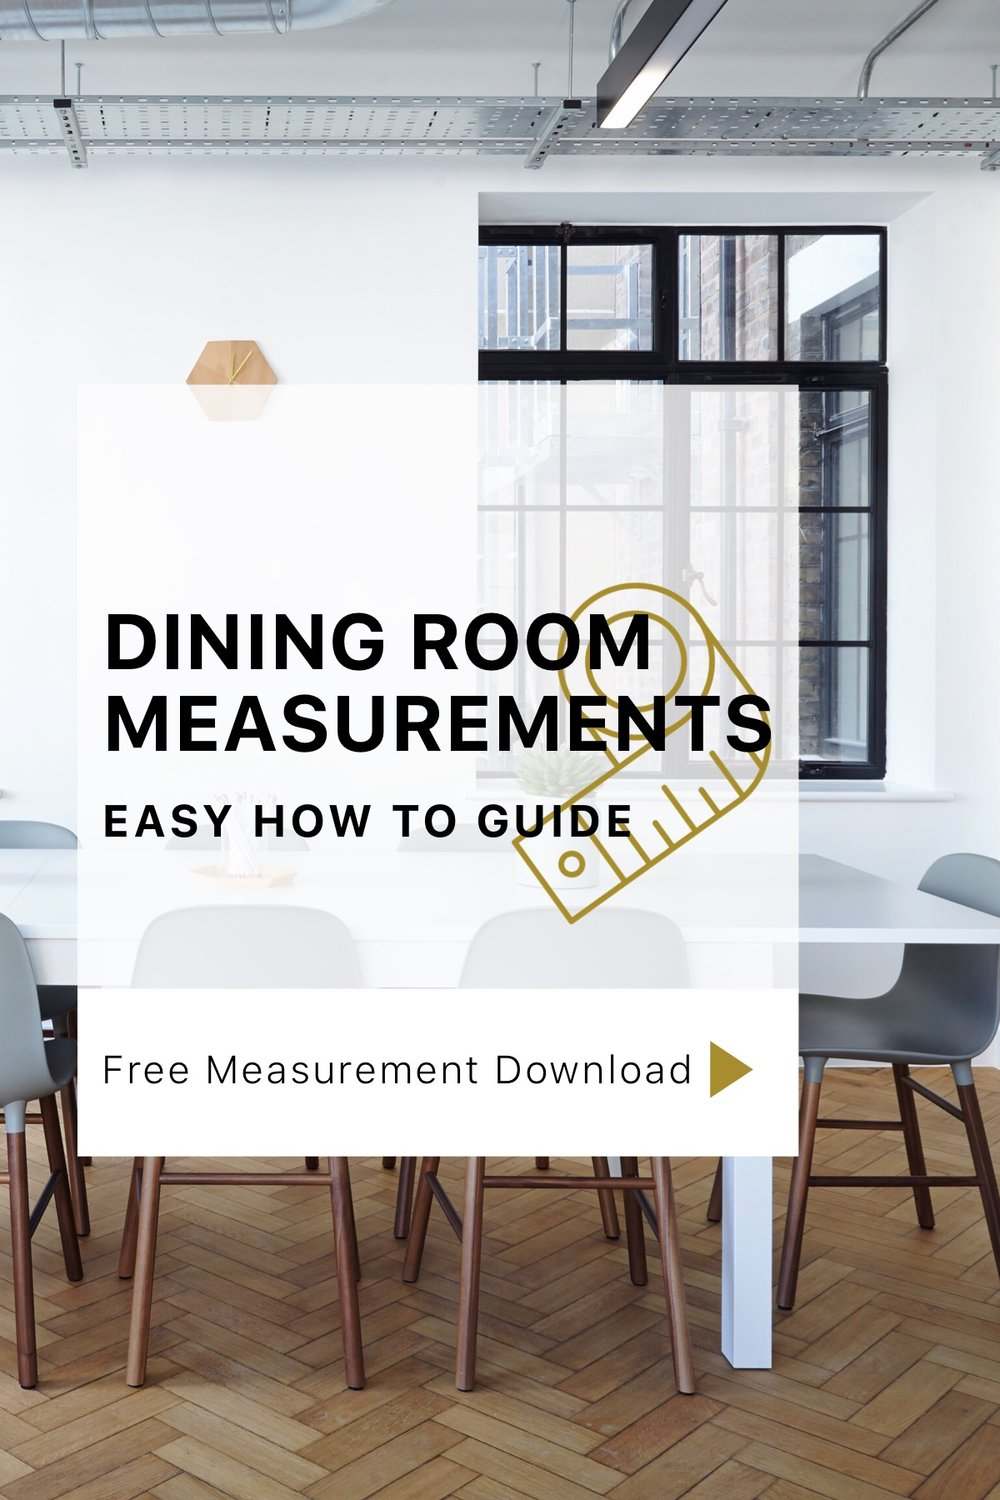 Dining Room Measurement Guide By Albie Knows